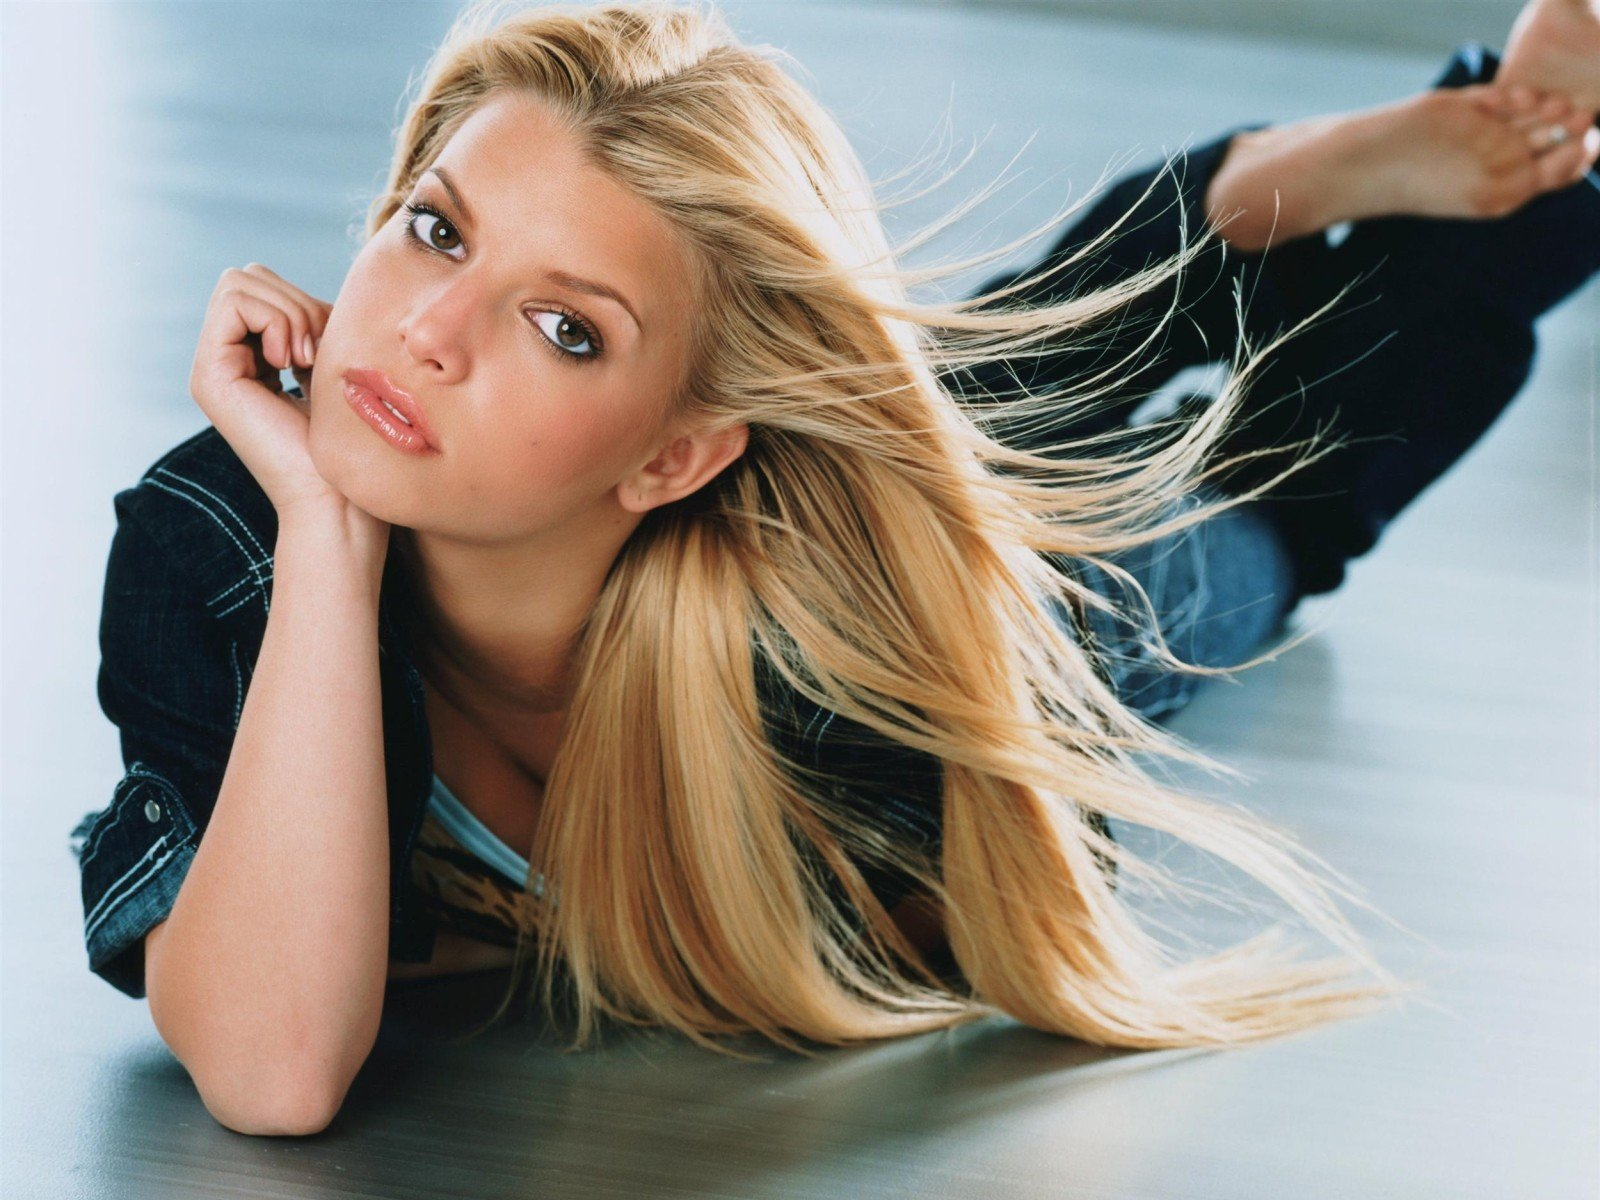 babe jessica simpson wallpapers jessica simpson wallpaper hd 27jpg 1600x1200